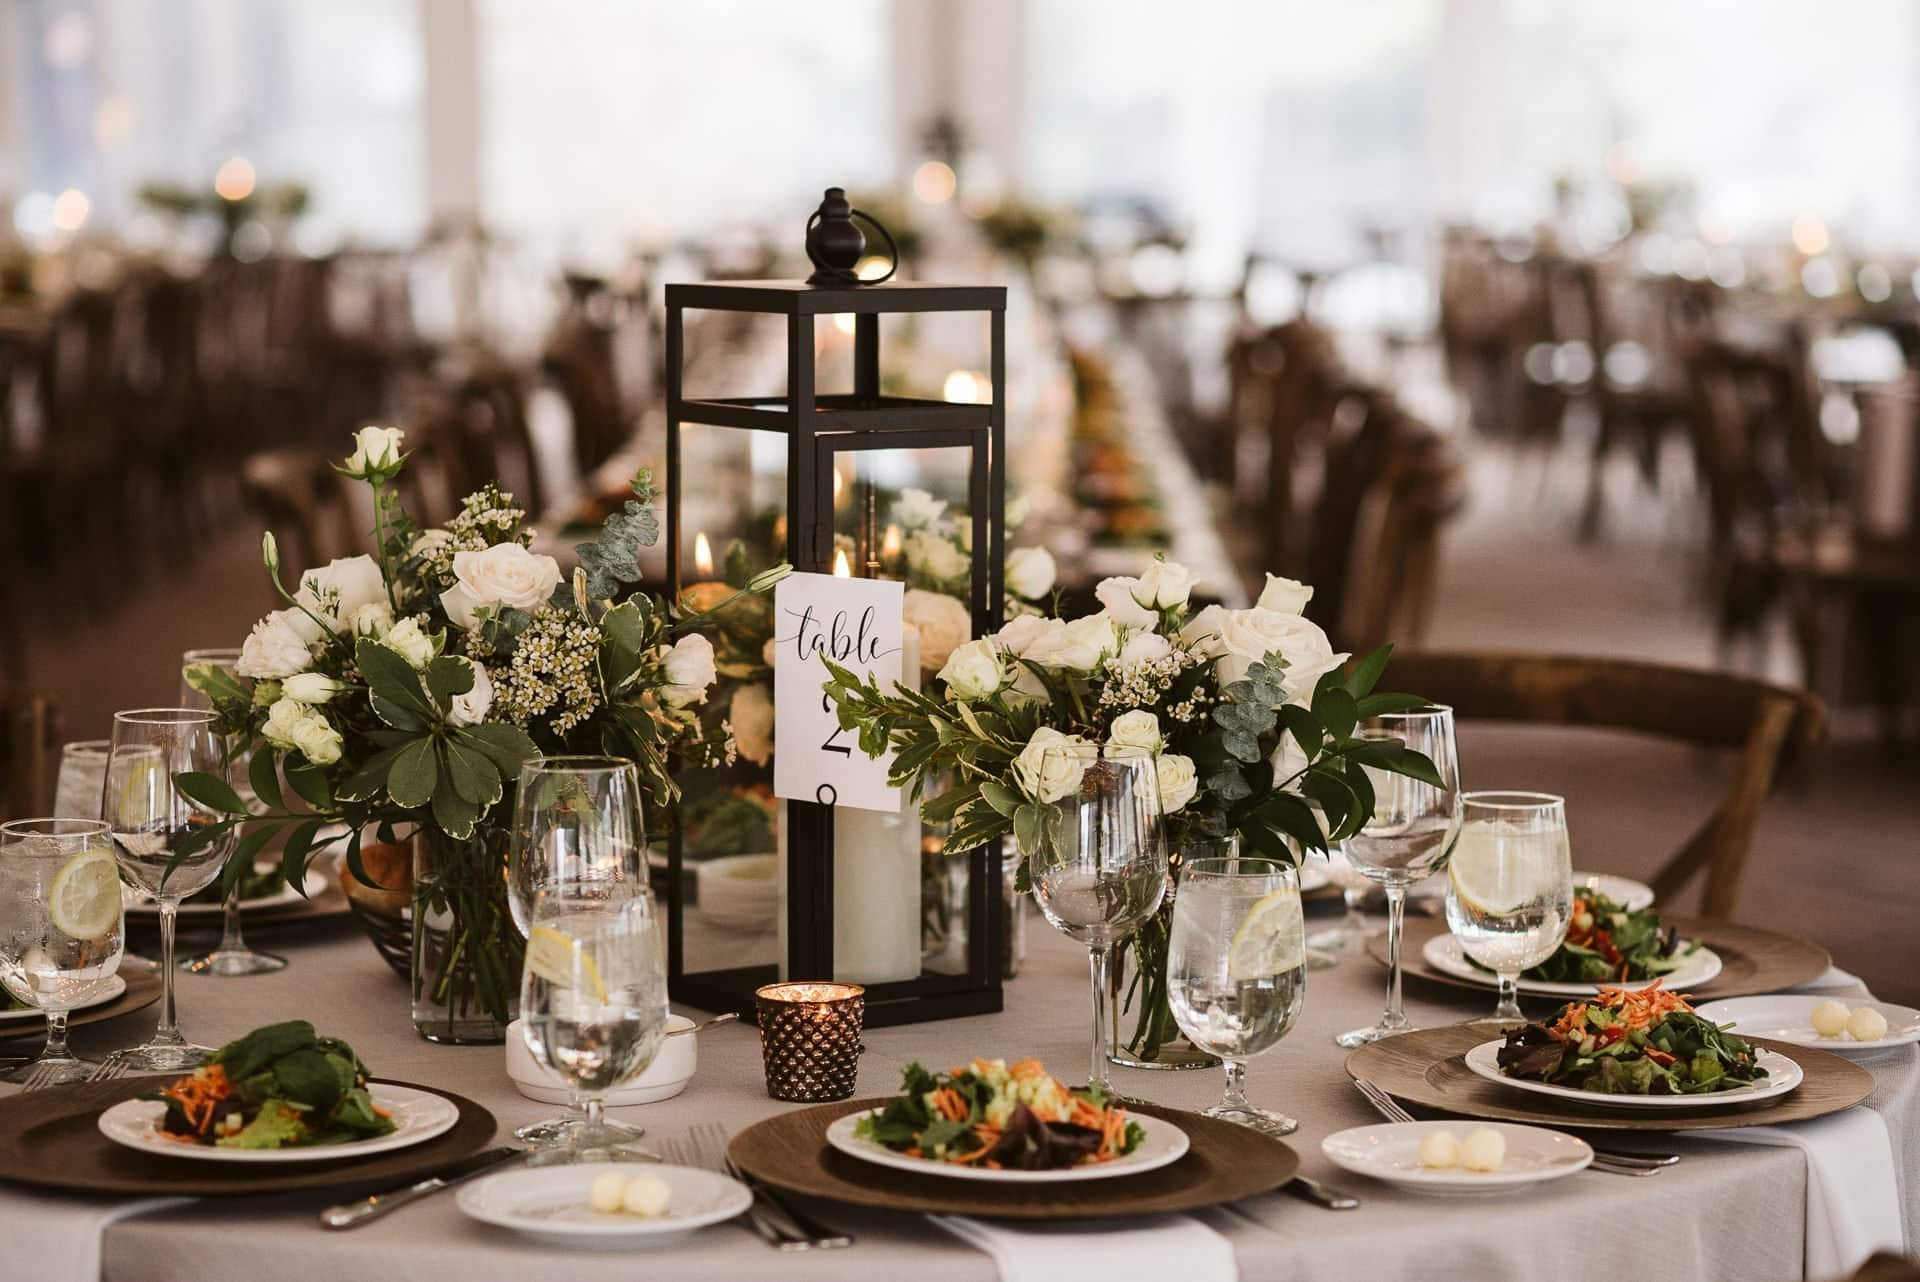 White tent wedding reception at Sevens at Breckenridge ski resort, Colorado mountain wedding reception with wood details and white flowers